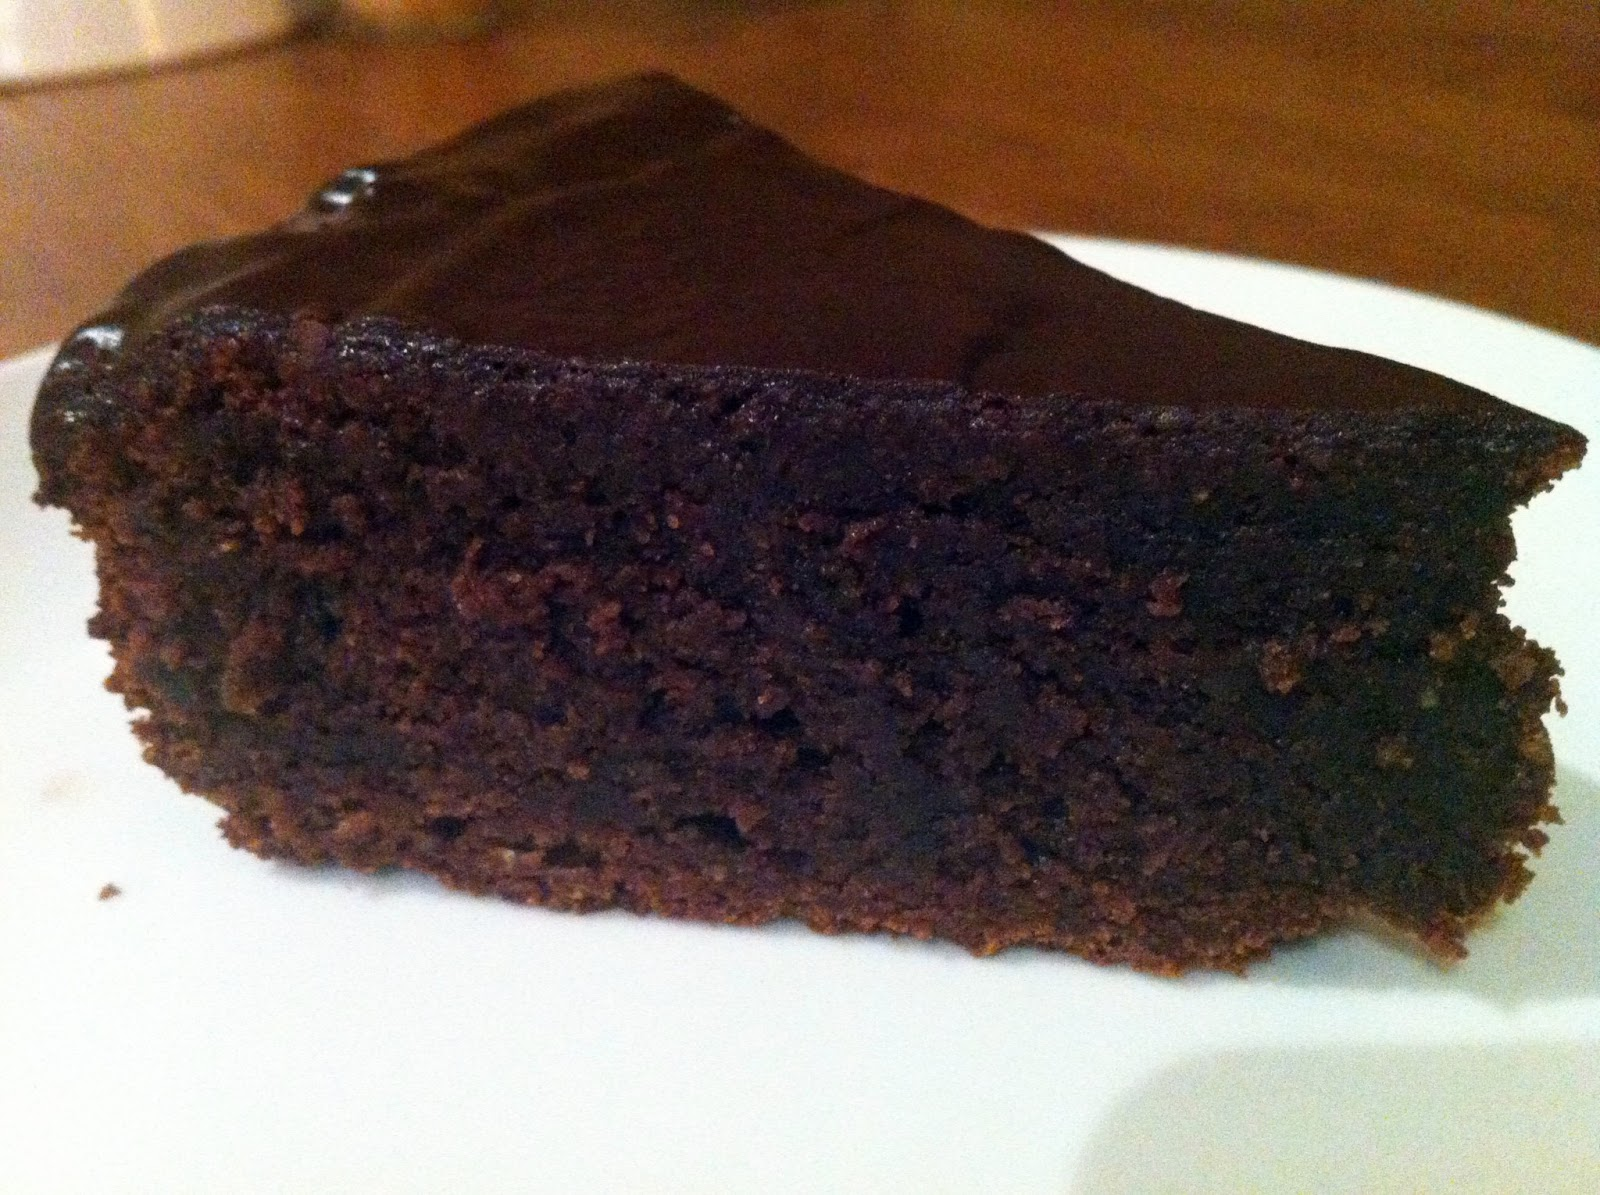 Gluten Free Chocolate Cake with Chocolate Glaze